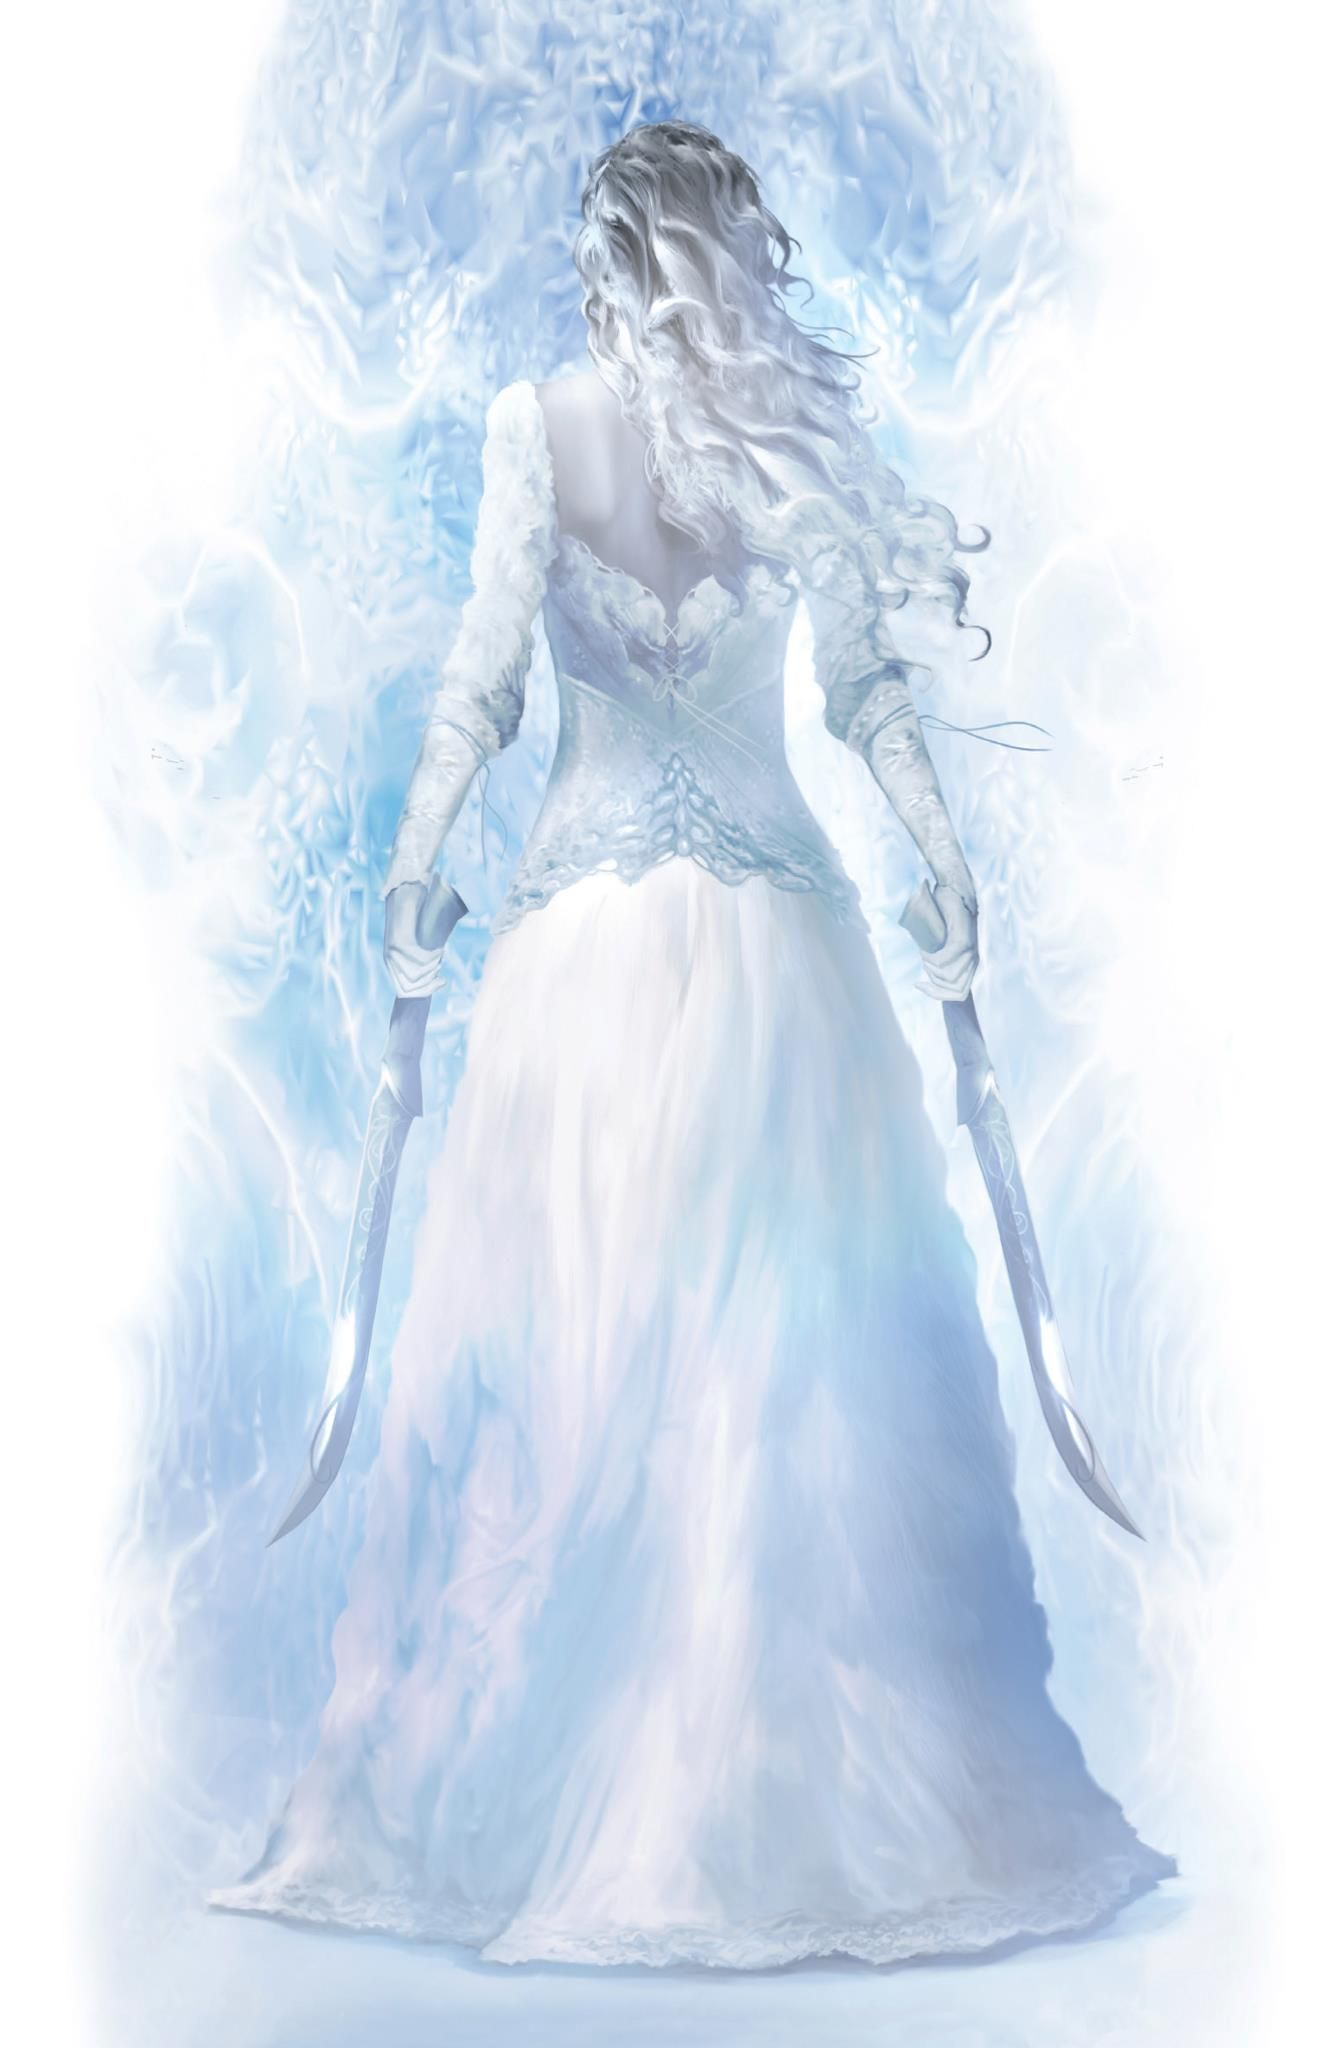 Art by Talexi – Back cover: Throne of Glass by Sarah J. Maas (UK/AUS/NZ Edition)